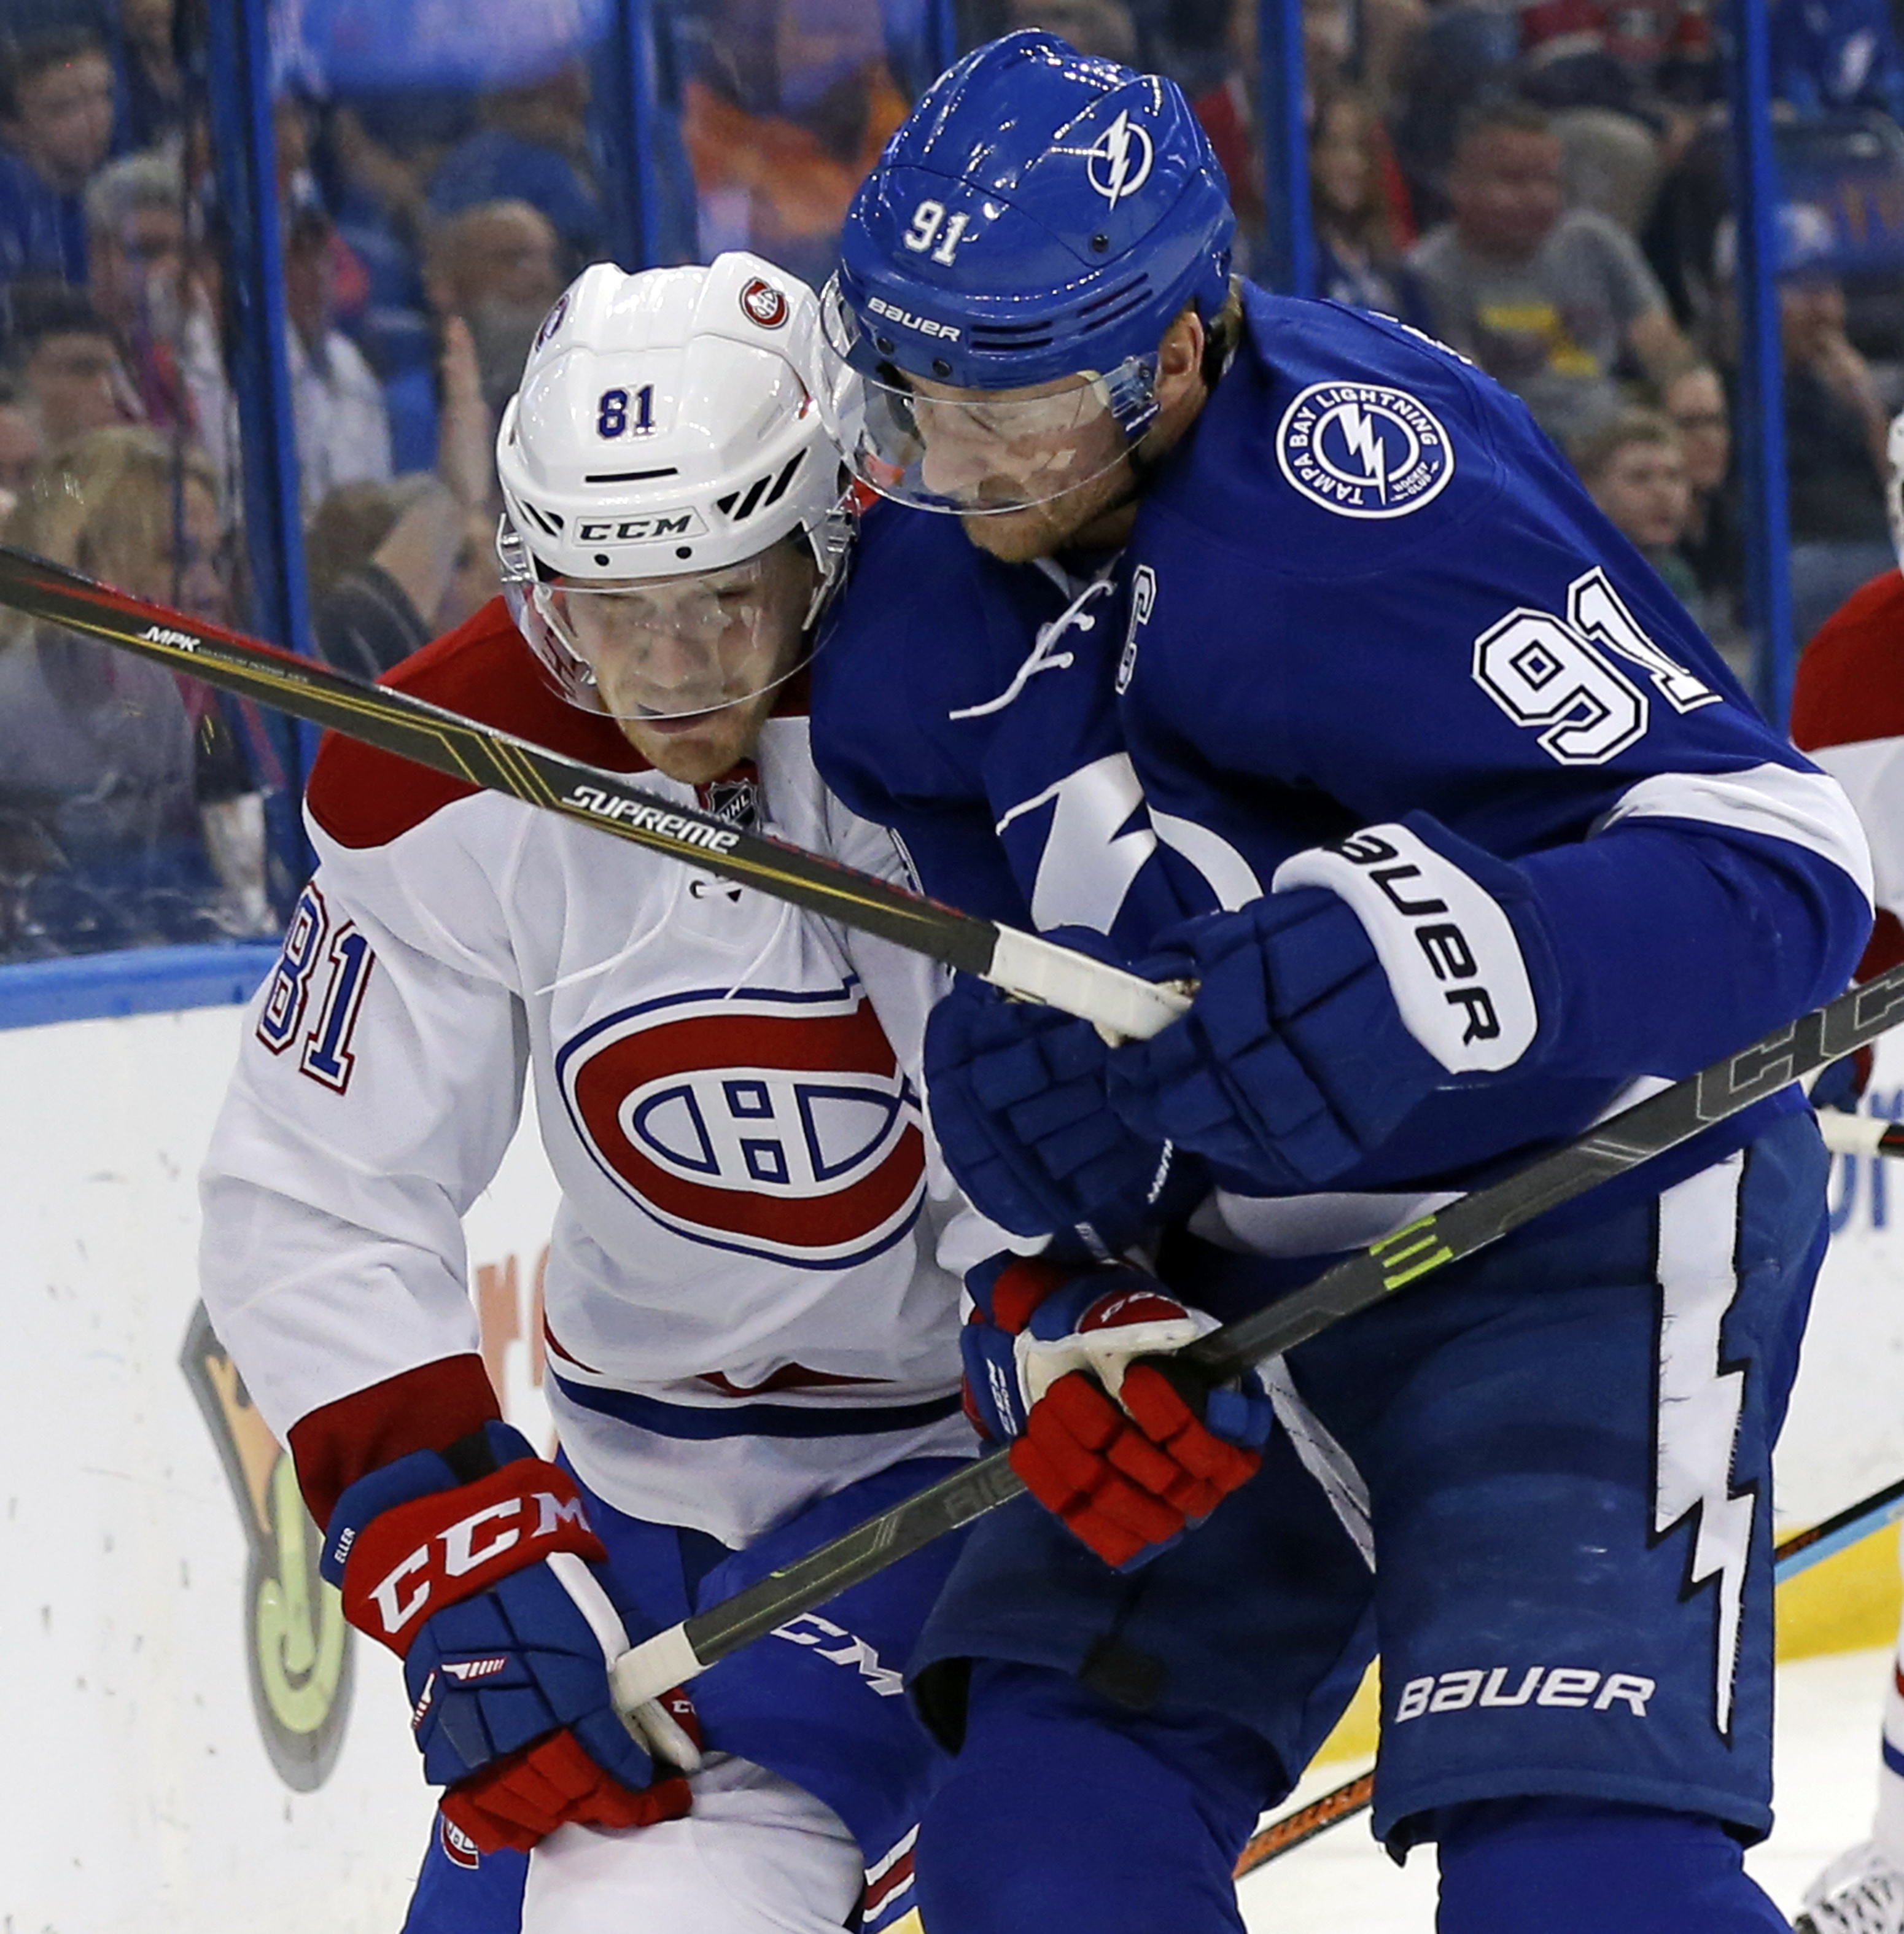 Tampa Bay Lightning's Steven Stamkos (91) checks Montreal Canadiens' Lars Eller, of Denmark,during the first period of an NHL hockey game Thursday, March 31, 2016, in Tampa, Fla. (AP Photo/Mike Carlson)